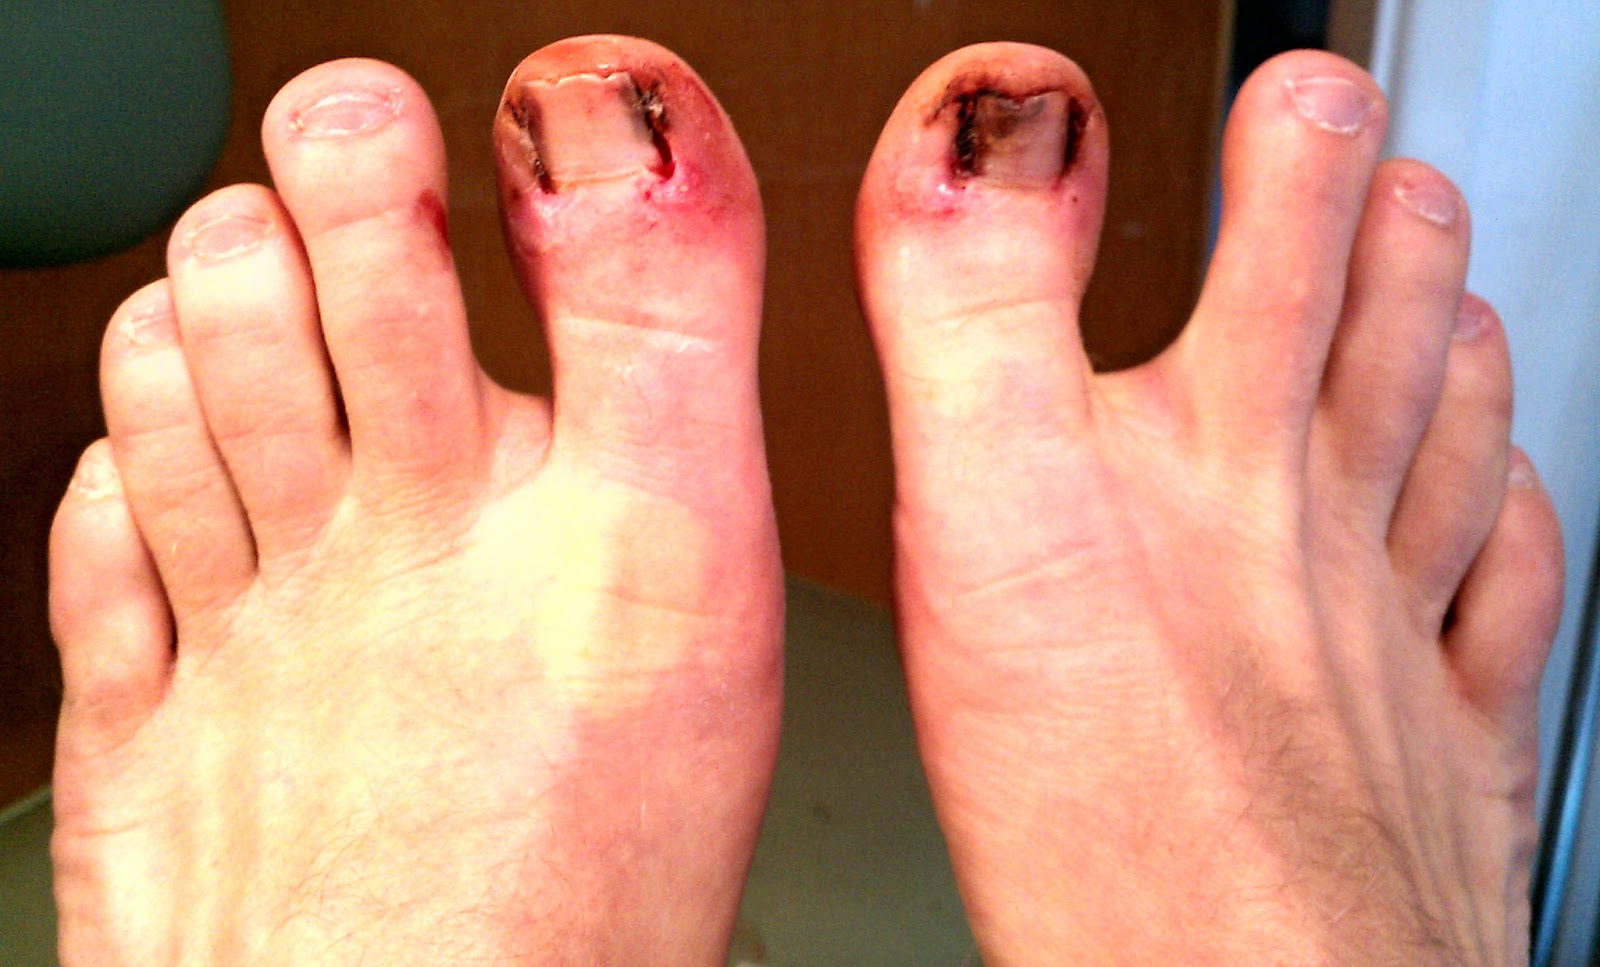 Erythromelalgia in Toes Info (Not CRPS Complex Regional Pain Syndrome)